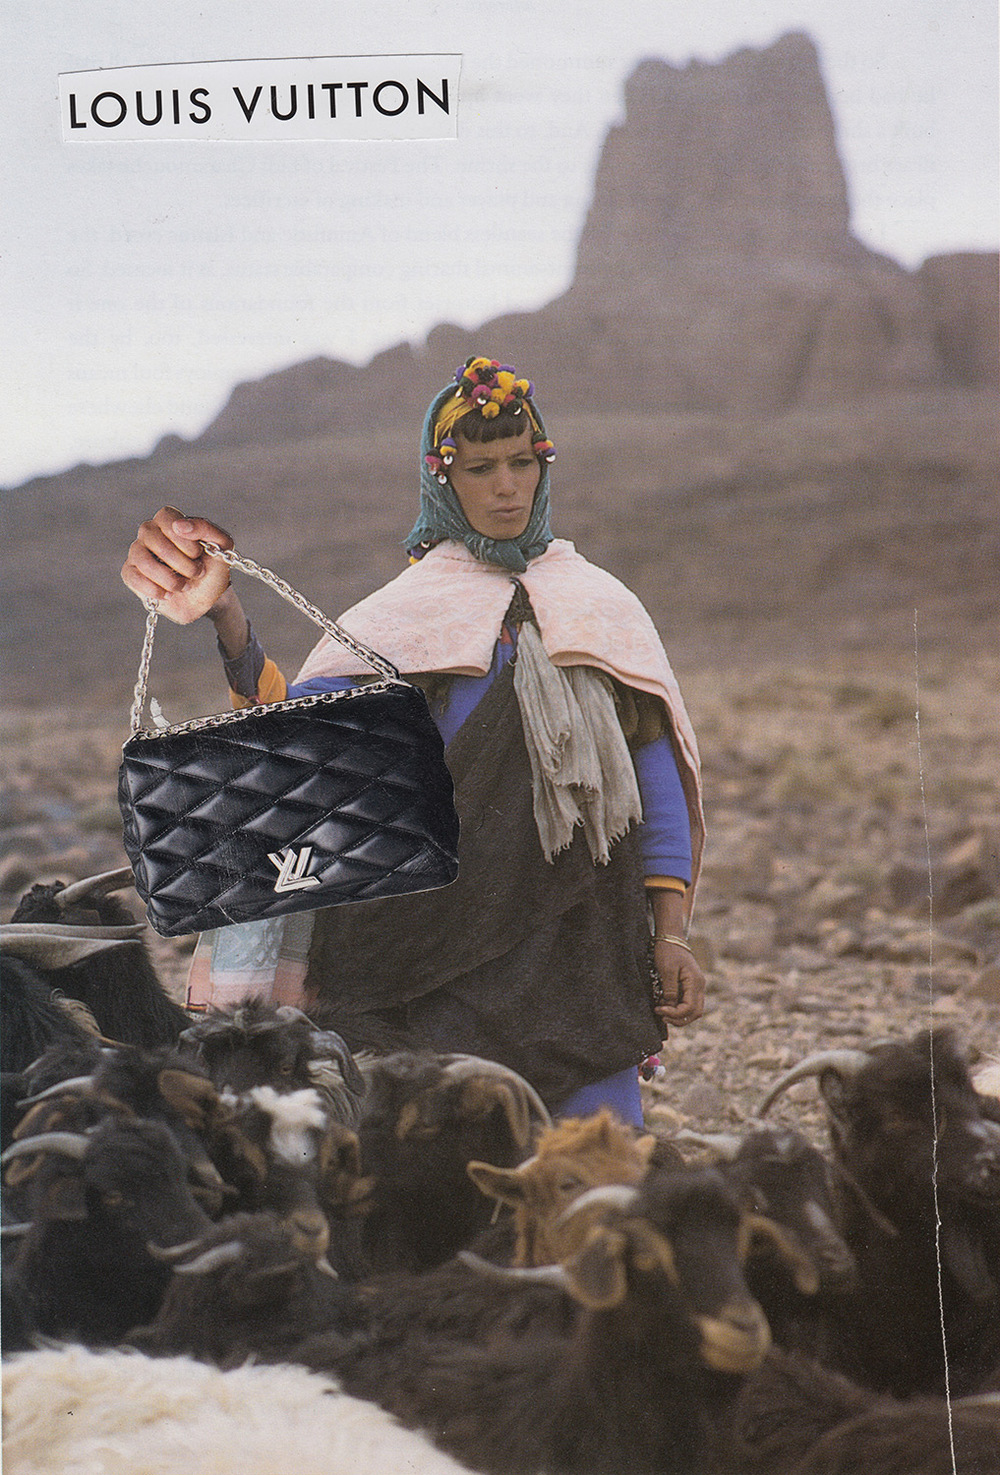 Louis Vuitton Goat Herder